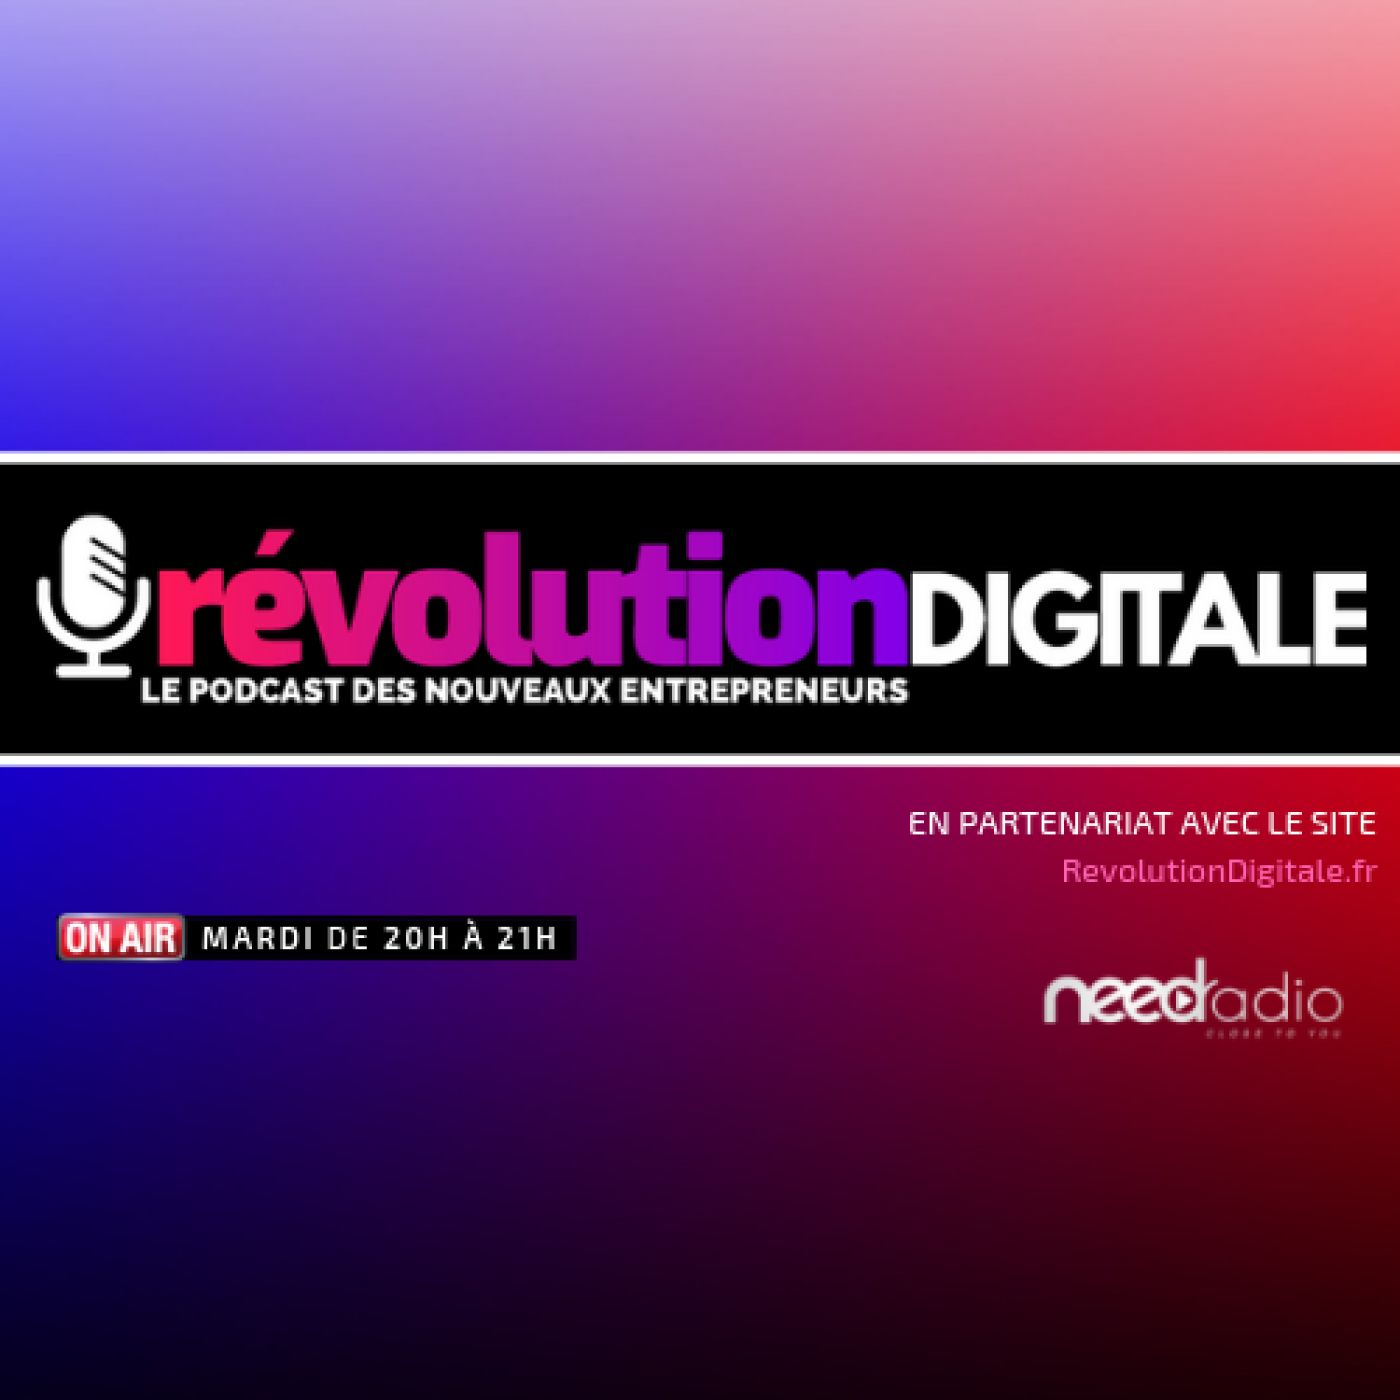 Révolution Digitale (11/09/18)